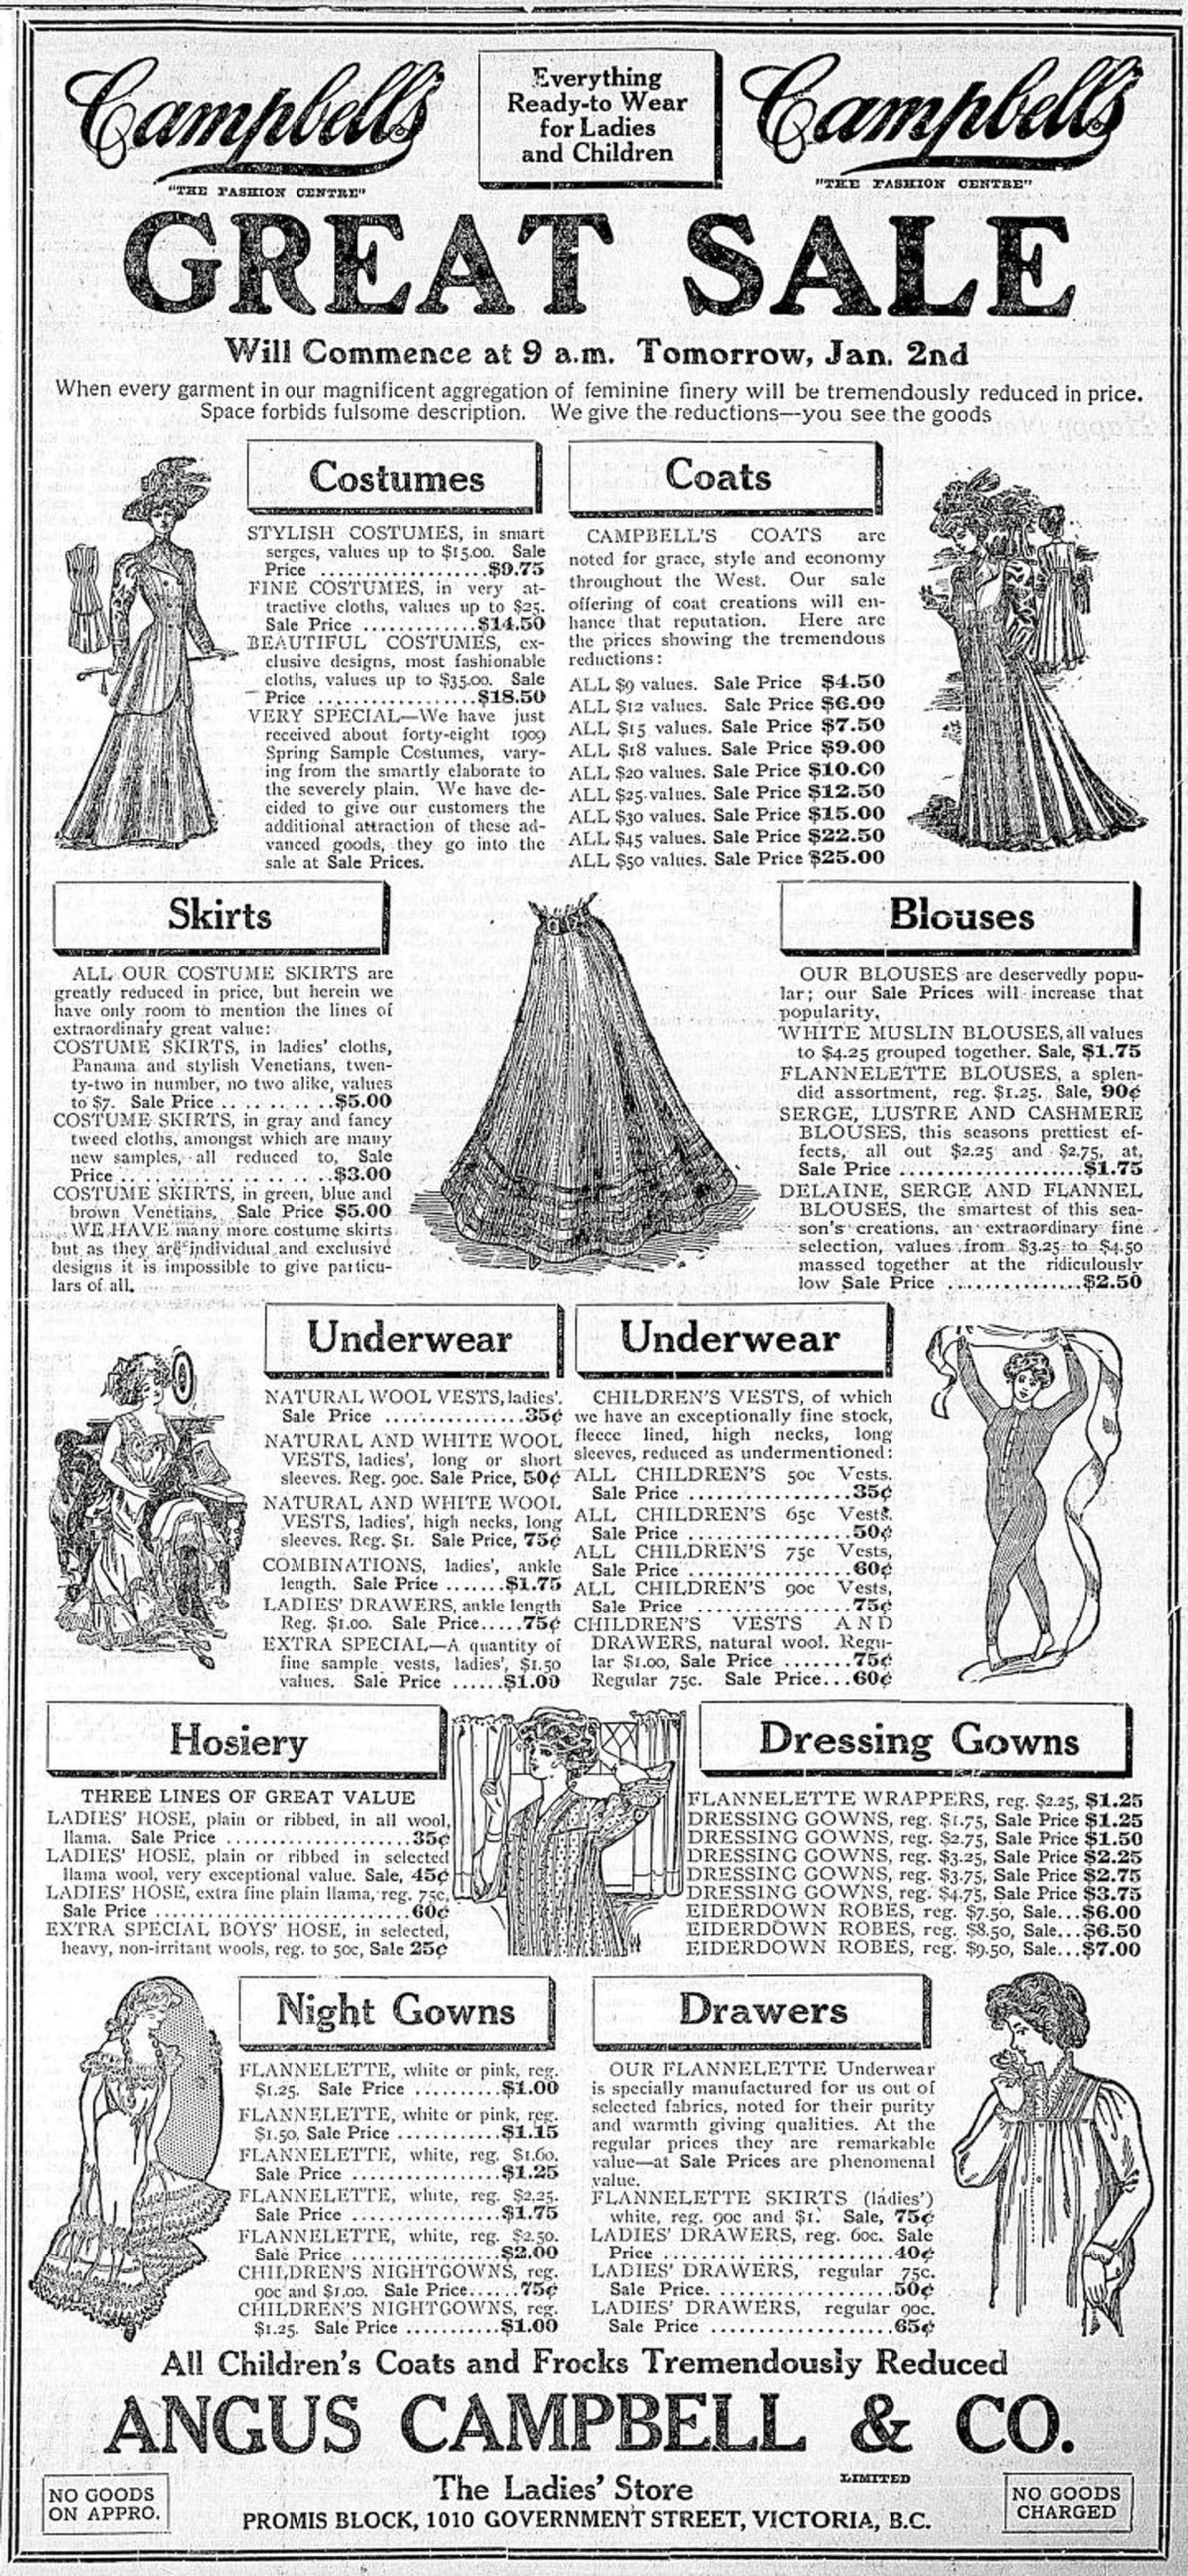 1909 advertisement for Angus Campbell & Co., a women's clothing store located at 1010 Government Street for several decades. (Victoria Online Sightseeing Tours collection)